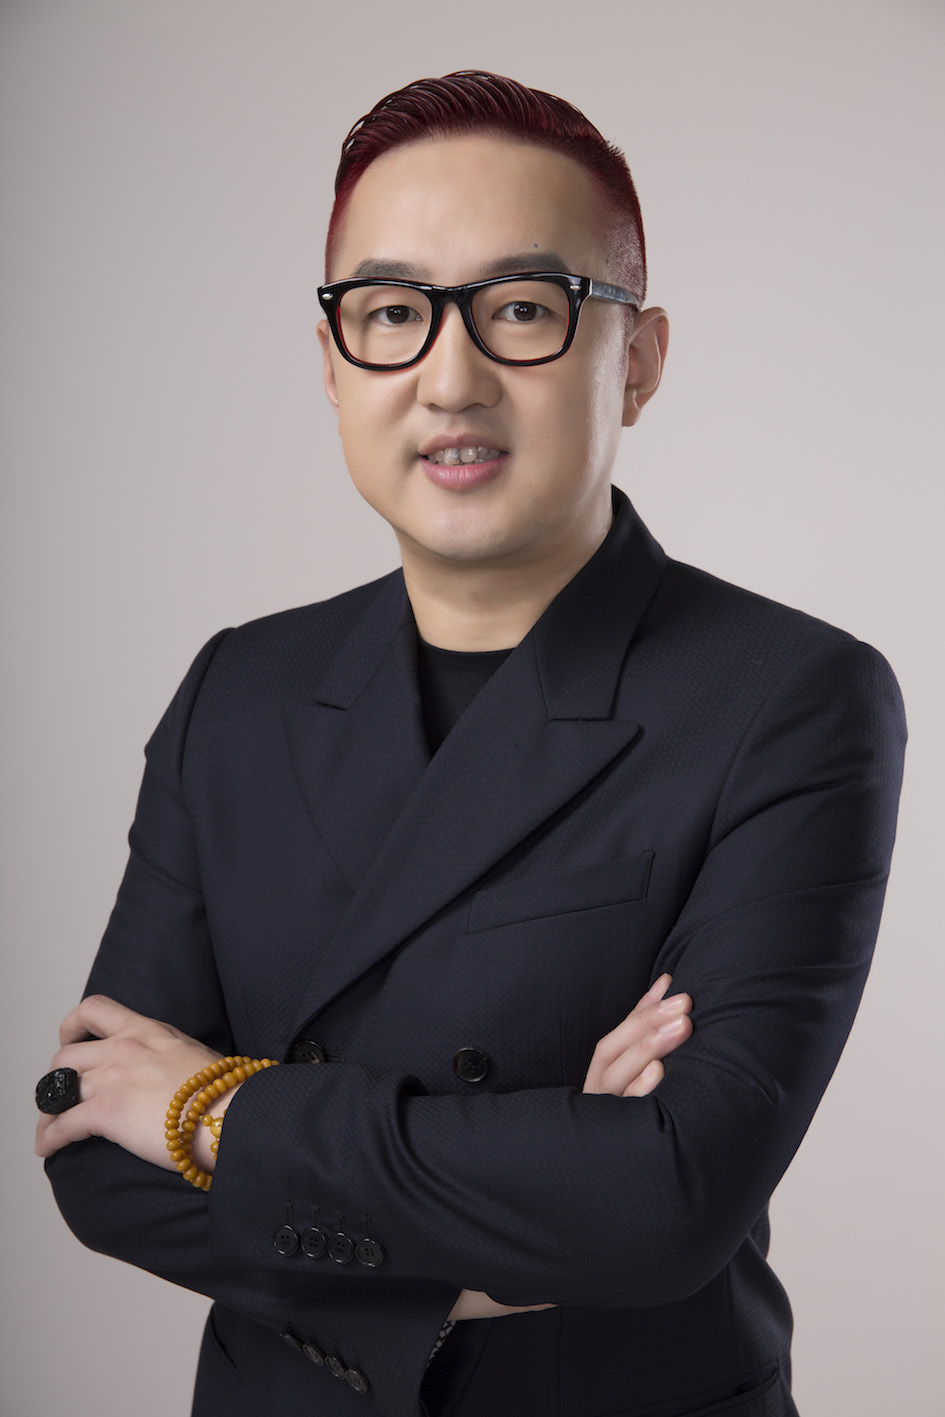 Bao Yifeng, co-founder of JingArt and Art021 art fairs - Proust Questionnaire